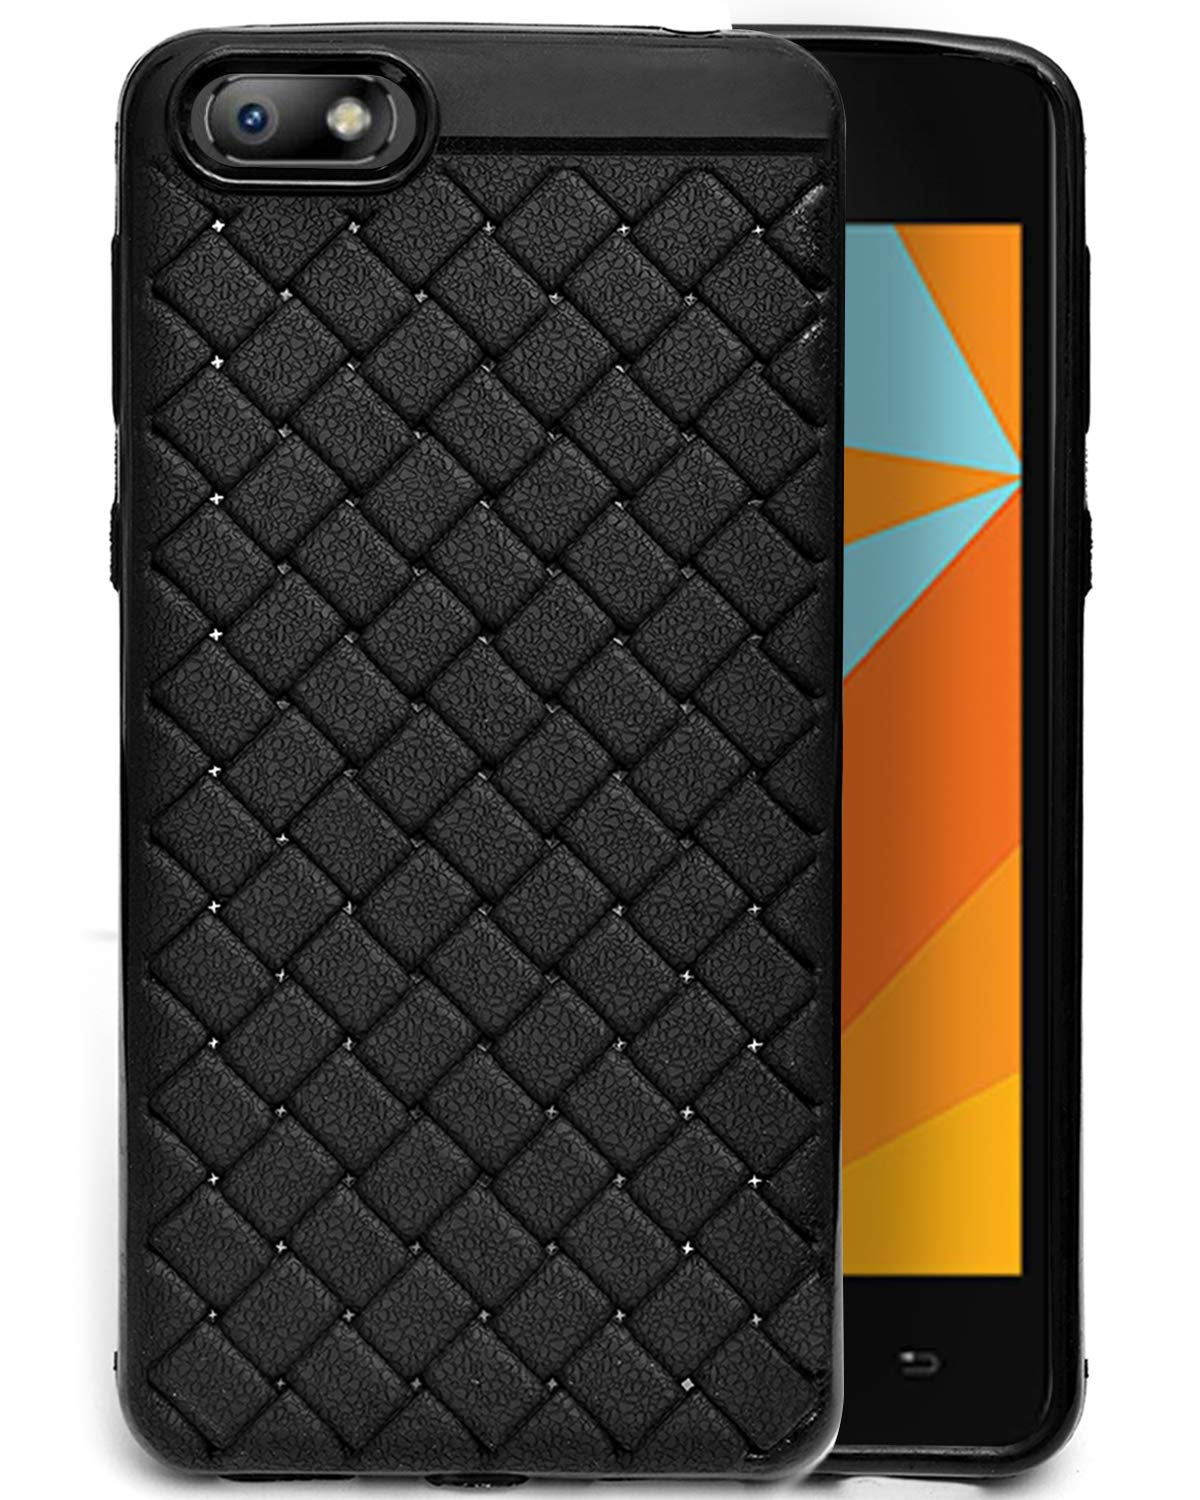 Micromax Bharat 5 Texture Pattern Soft Cusion Padding Case Back Cover - Black